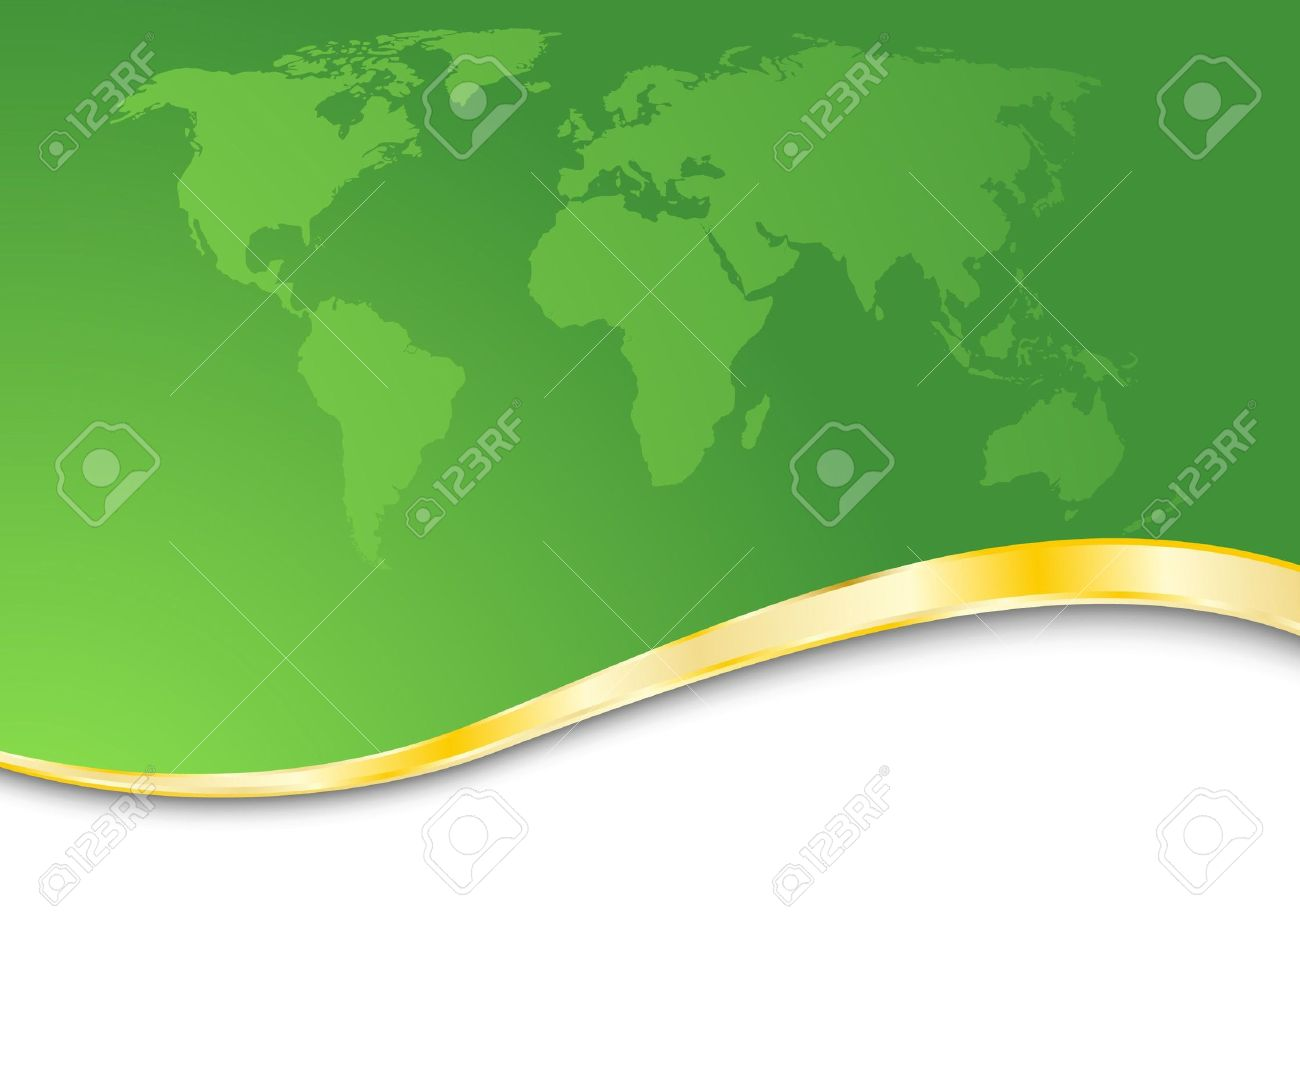 Green Business Card With Golden Rim Clip Art Free